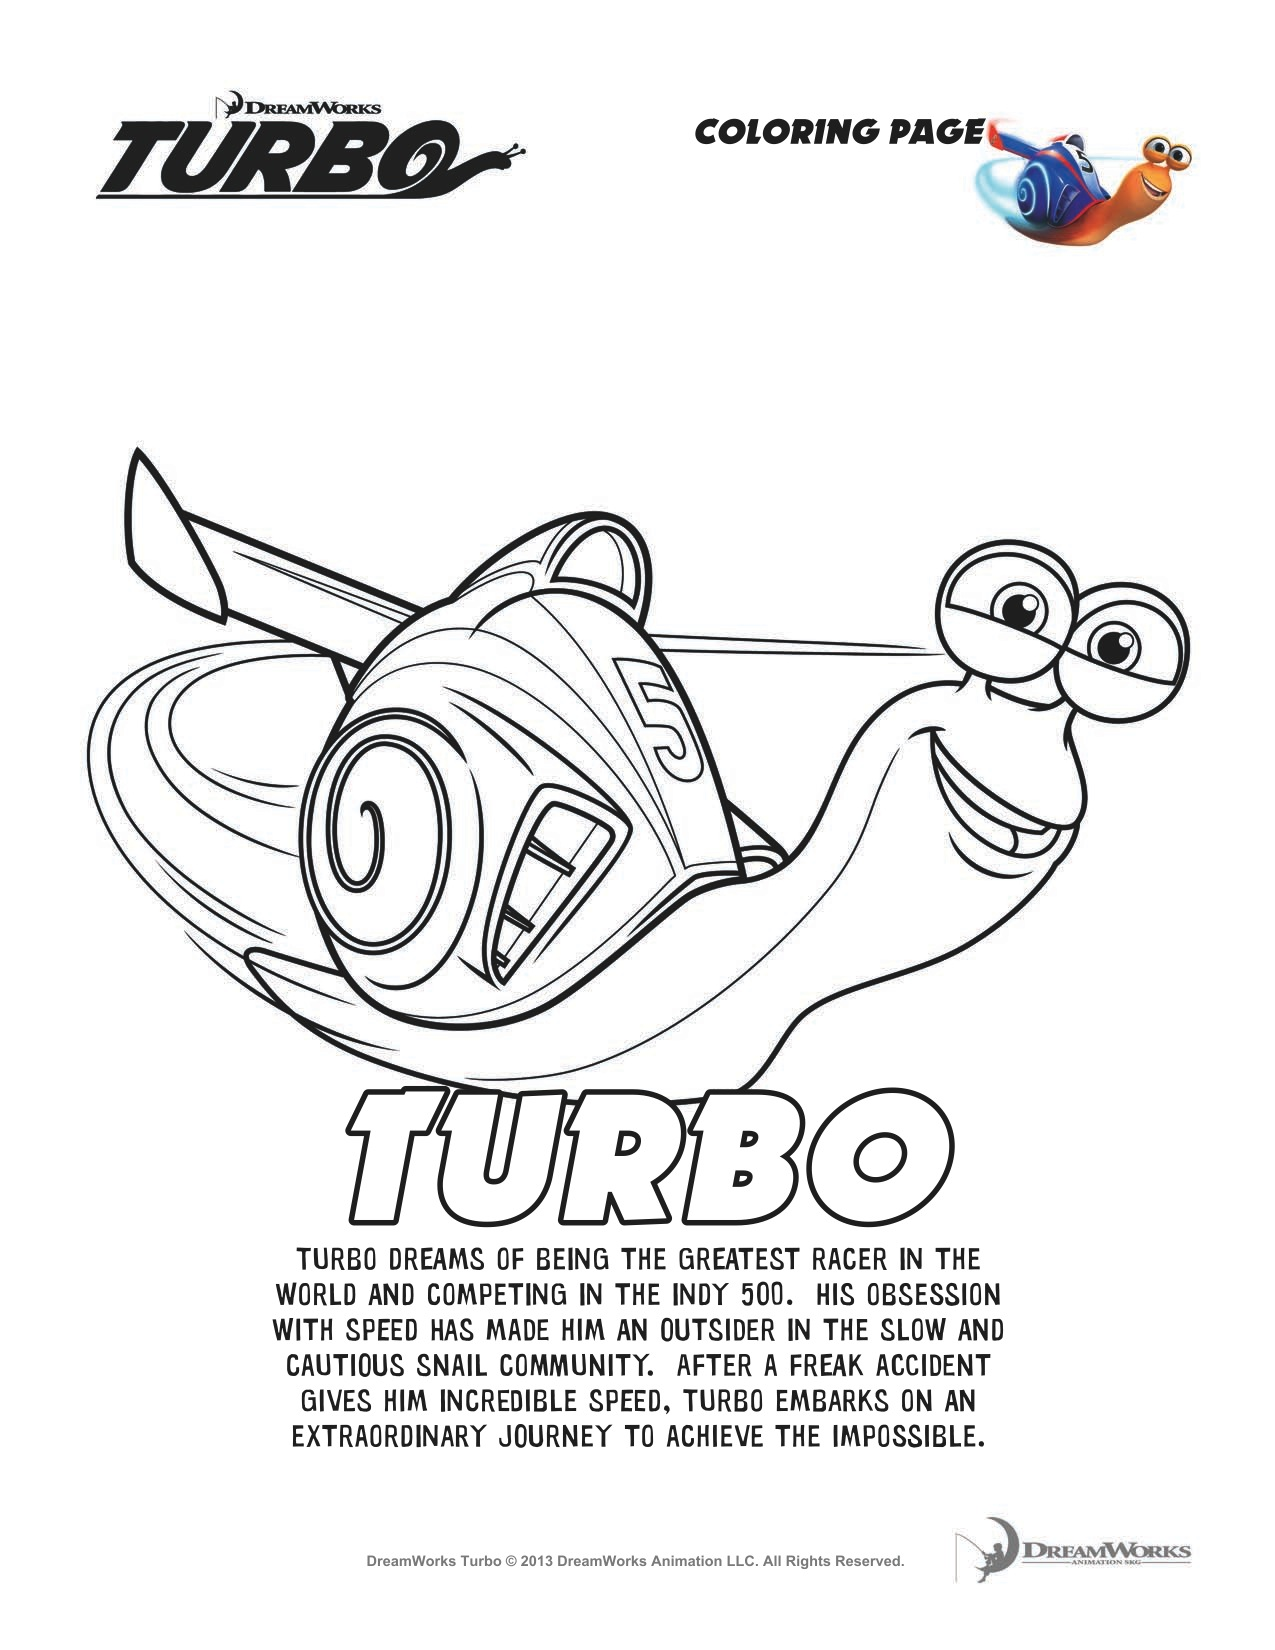 Coloring Pages To Print Turbo - Worksheet & Coloring Pages